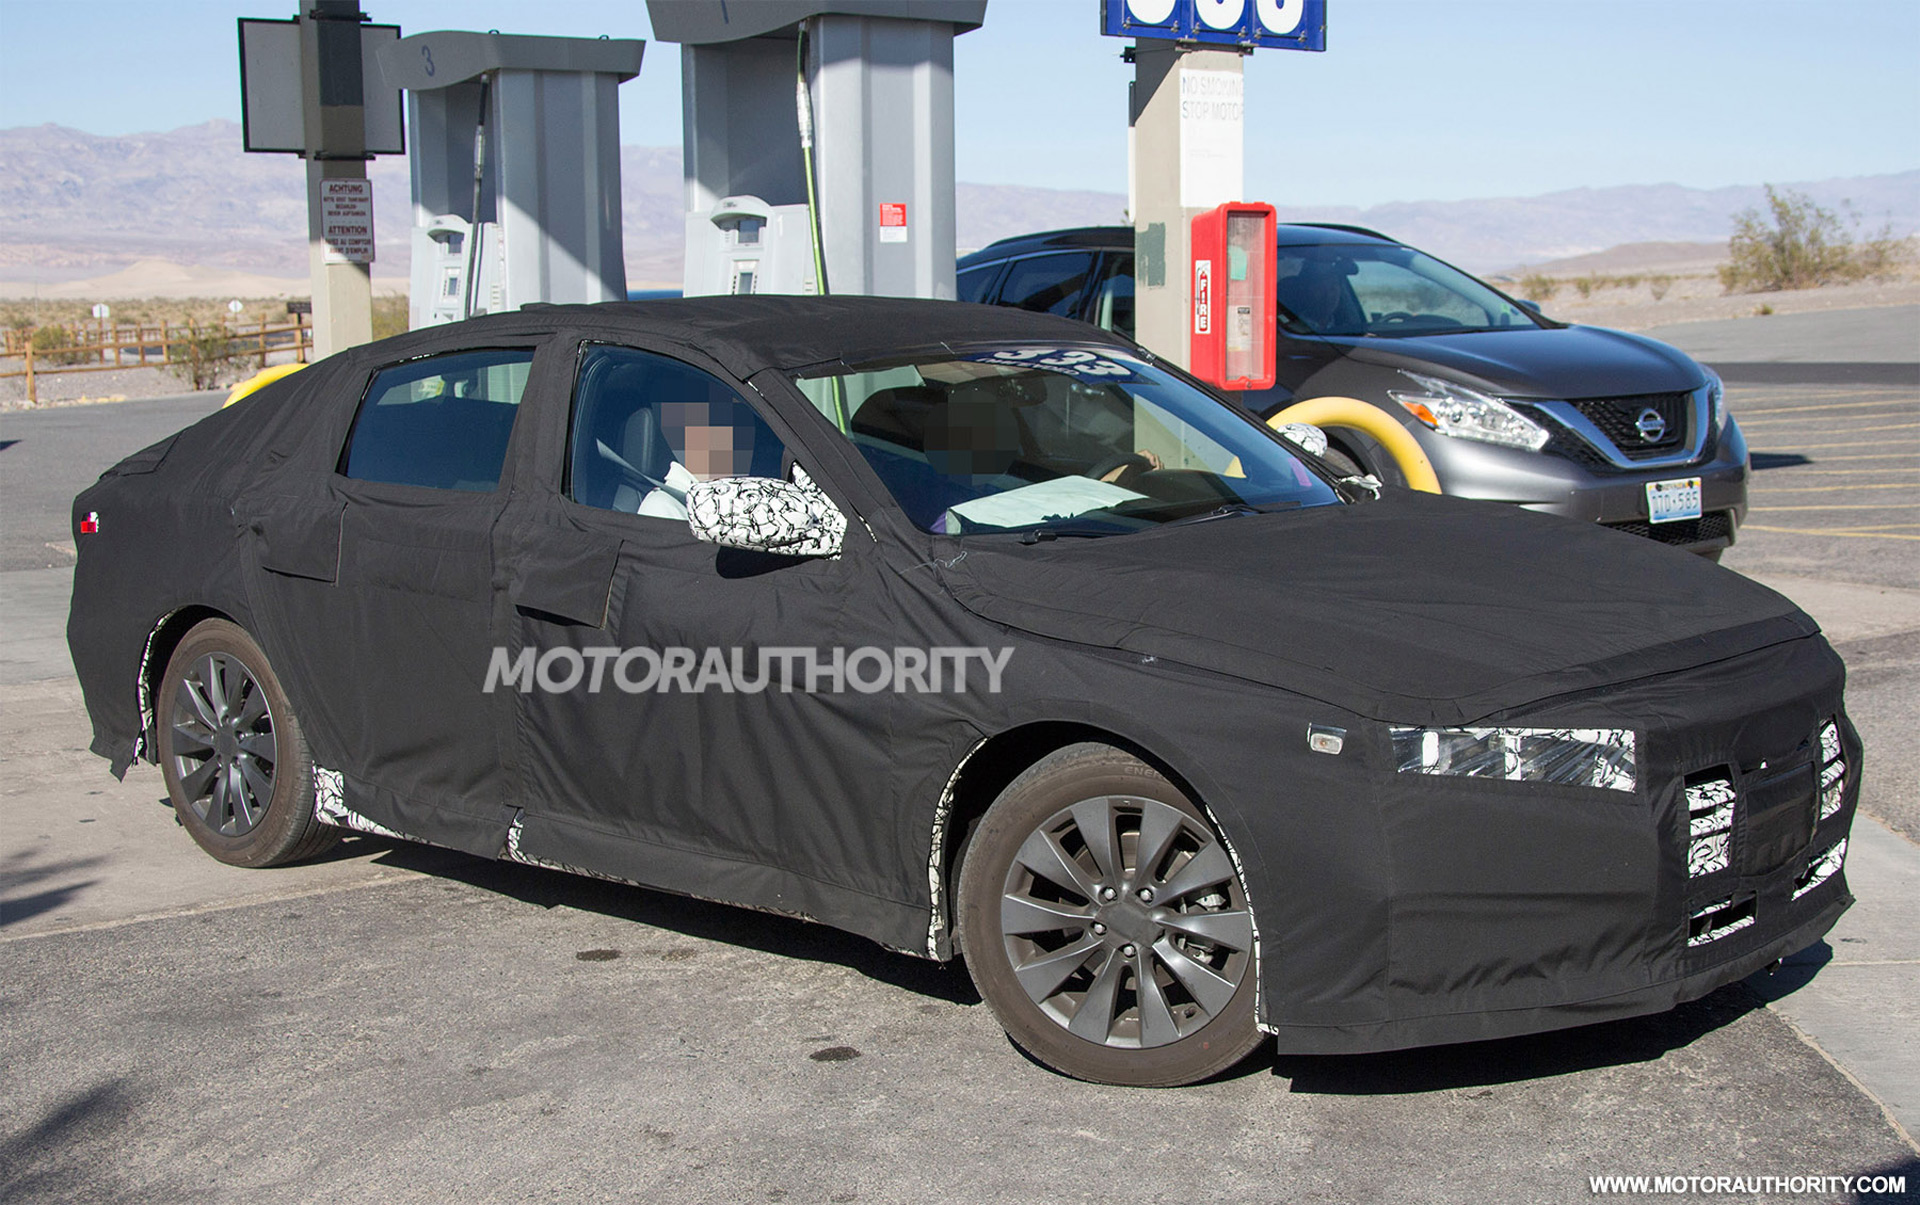 2018 Honda Accord spy shots